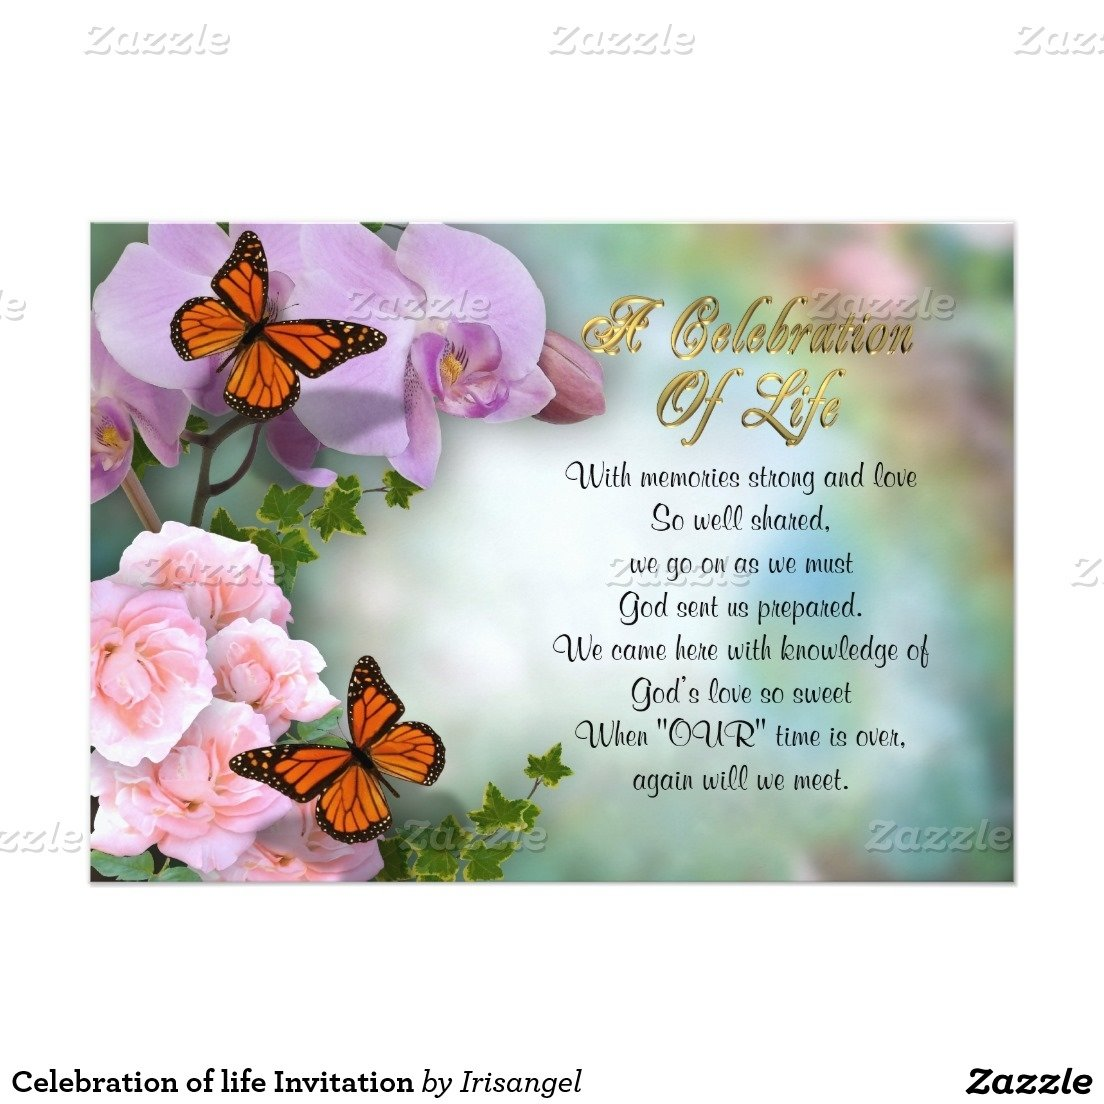 10 Great Celebration Of Life Party Ideas celebration of life invitation butterflies celebrations and butterfly 2021